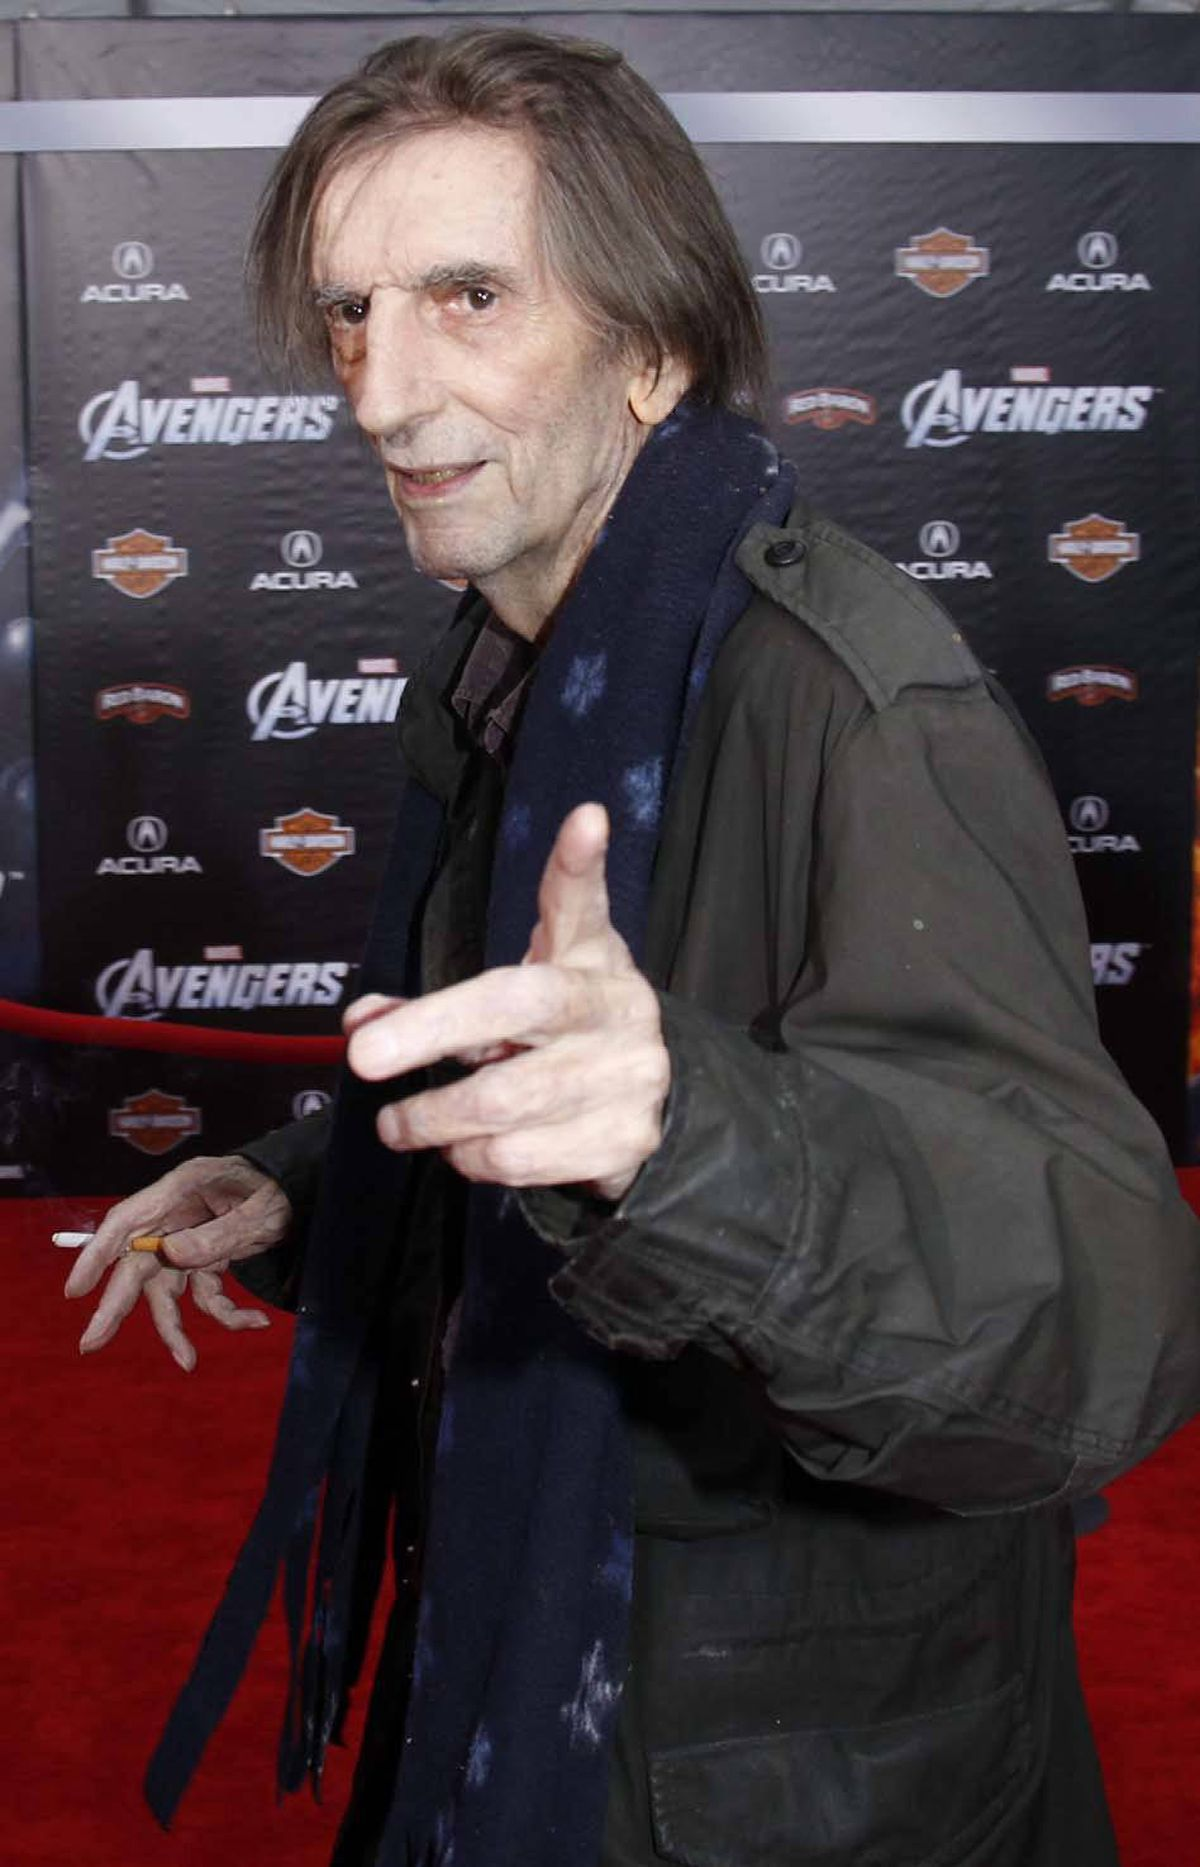 """Actor Harry Dean Stanton wanted you to smell his finger at the premiere of """"Marvel's The Avengers"""" in Hollywood last week."""